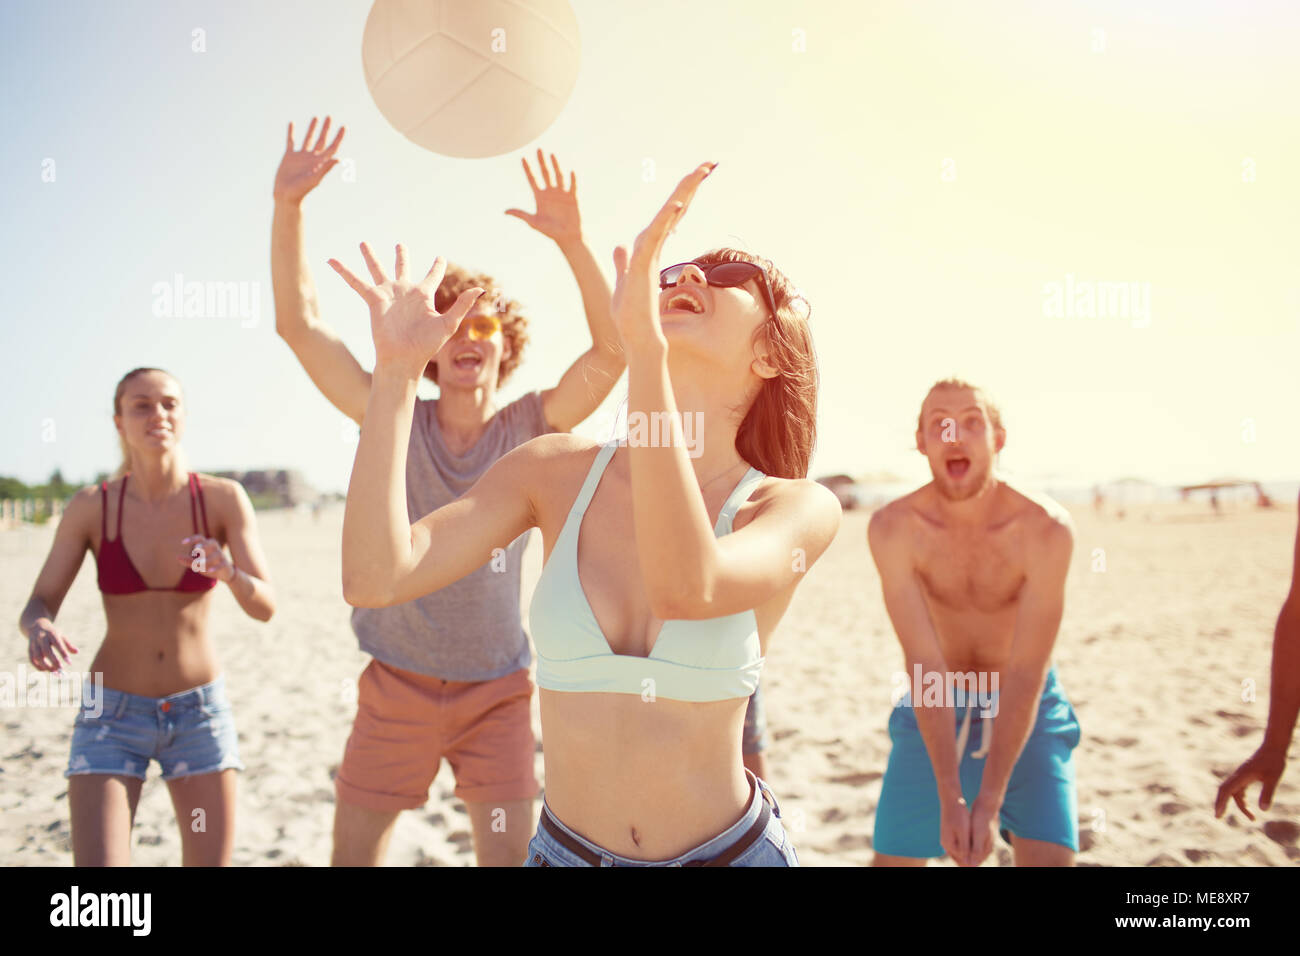 Groupe d'amis jouant au beach-volley sur la plage Photo Stock